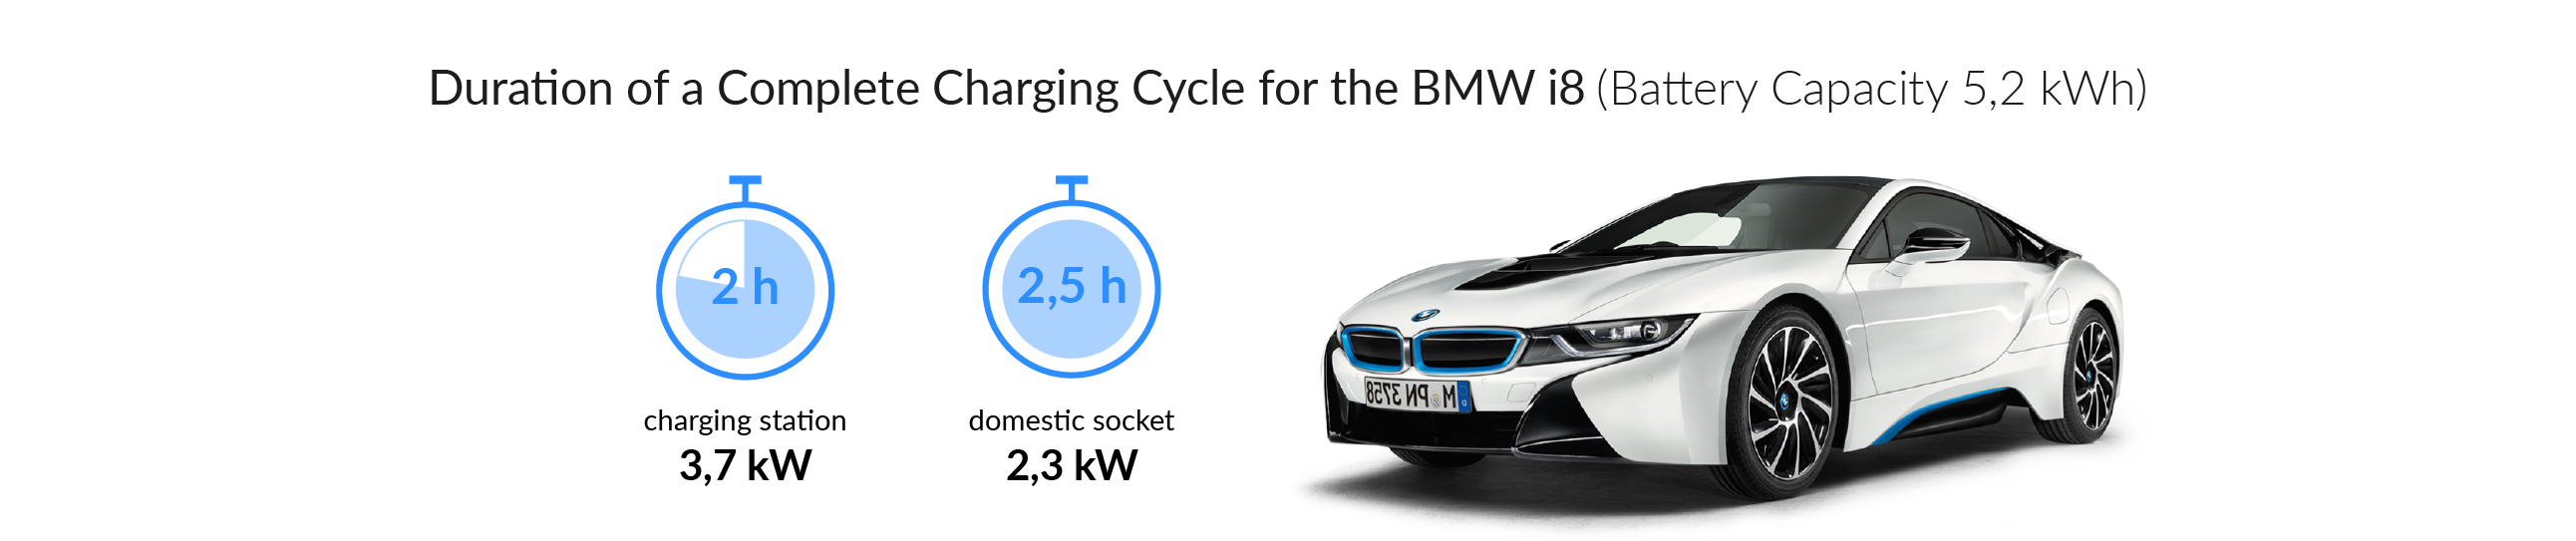 BMW i8 | Charging station, charging cable & installation